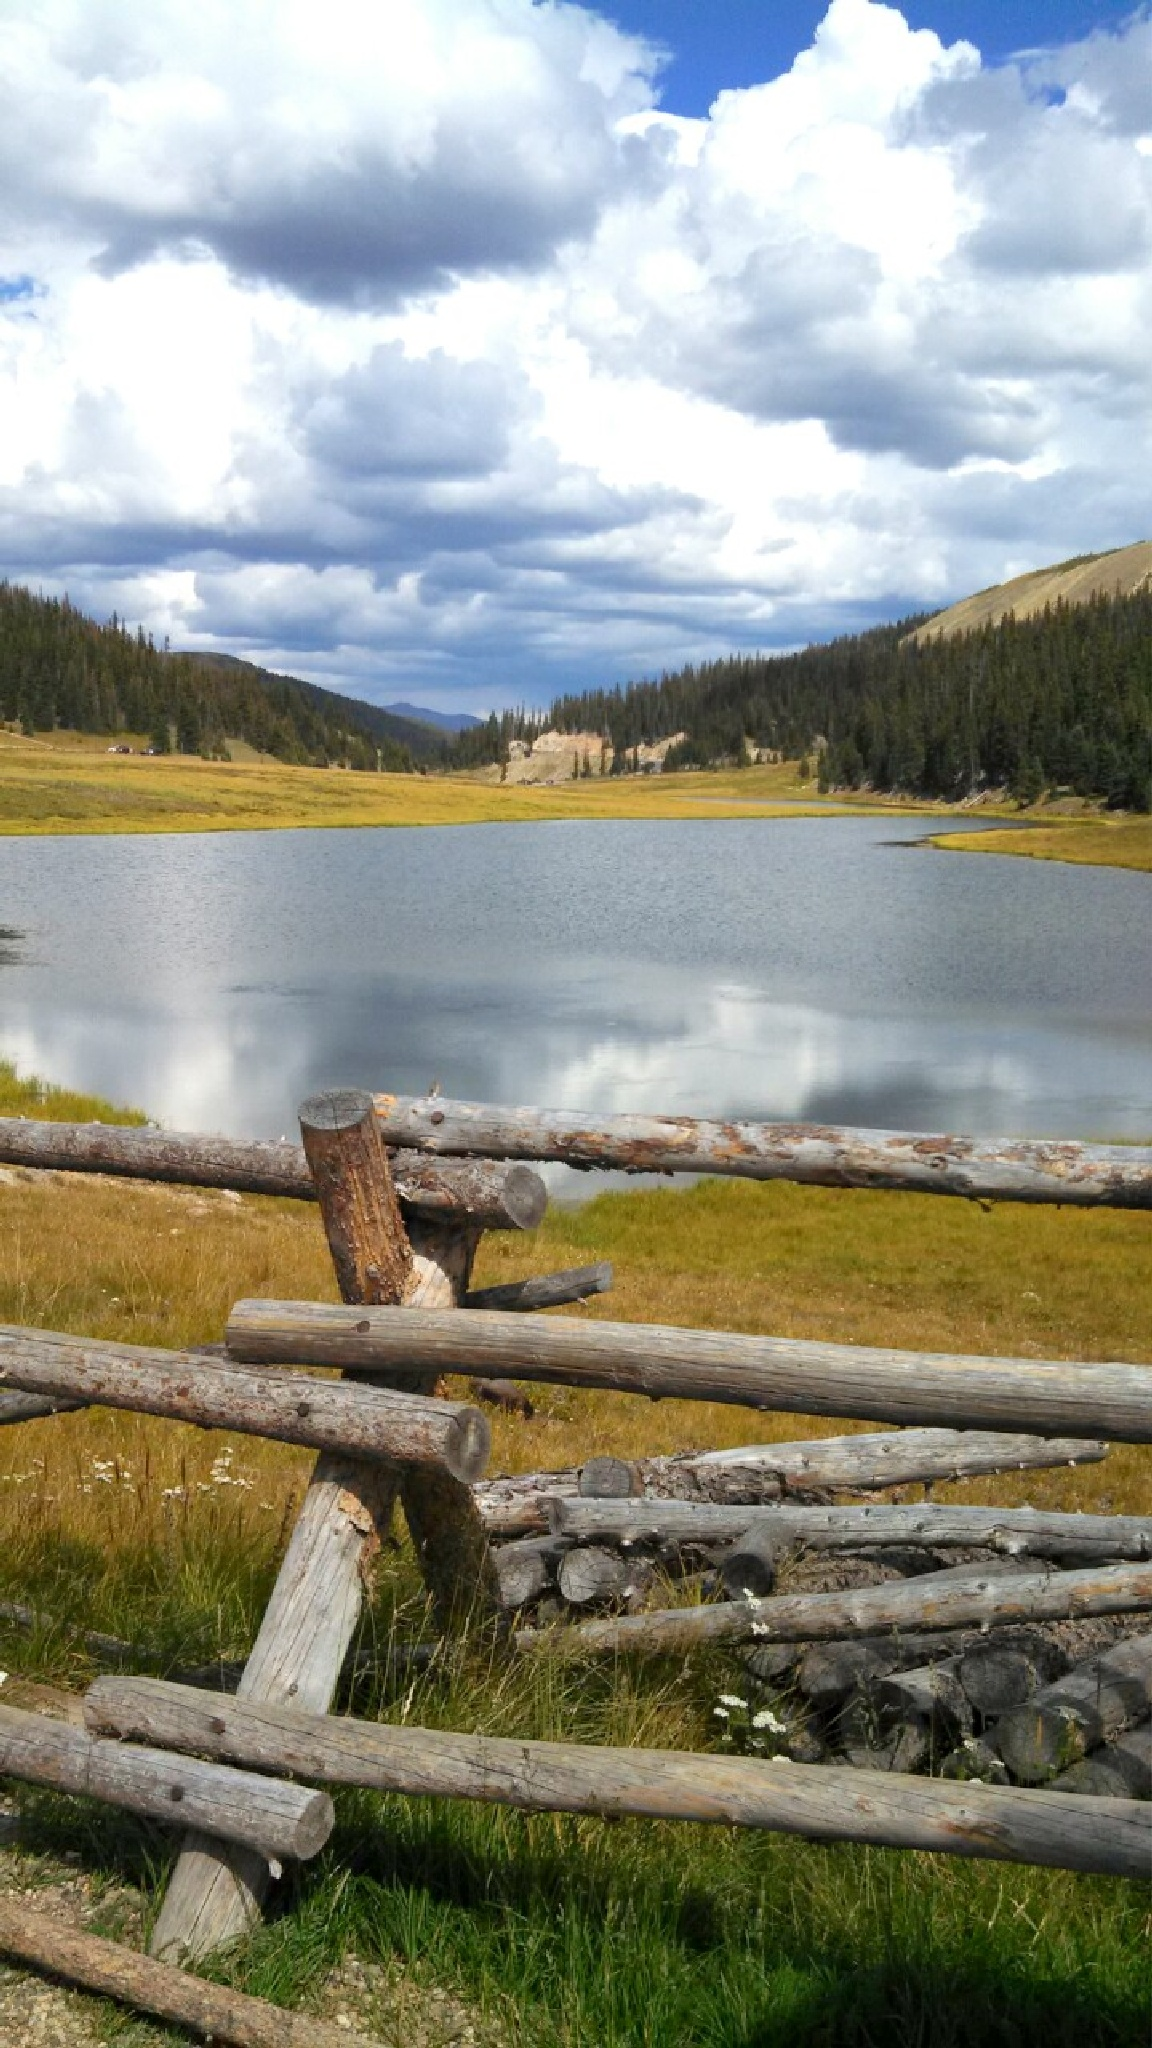 @The Continental Divide by Steve Umbaugh